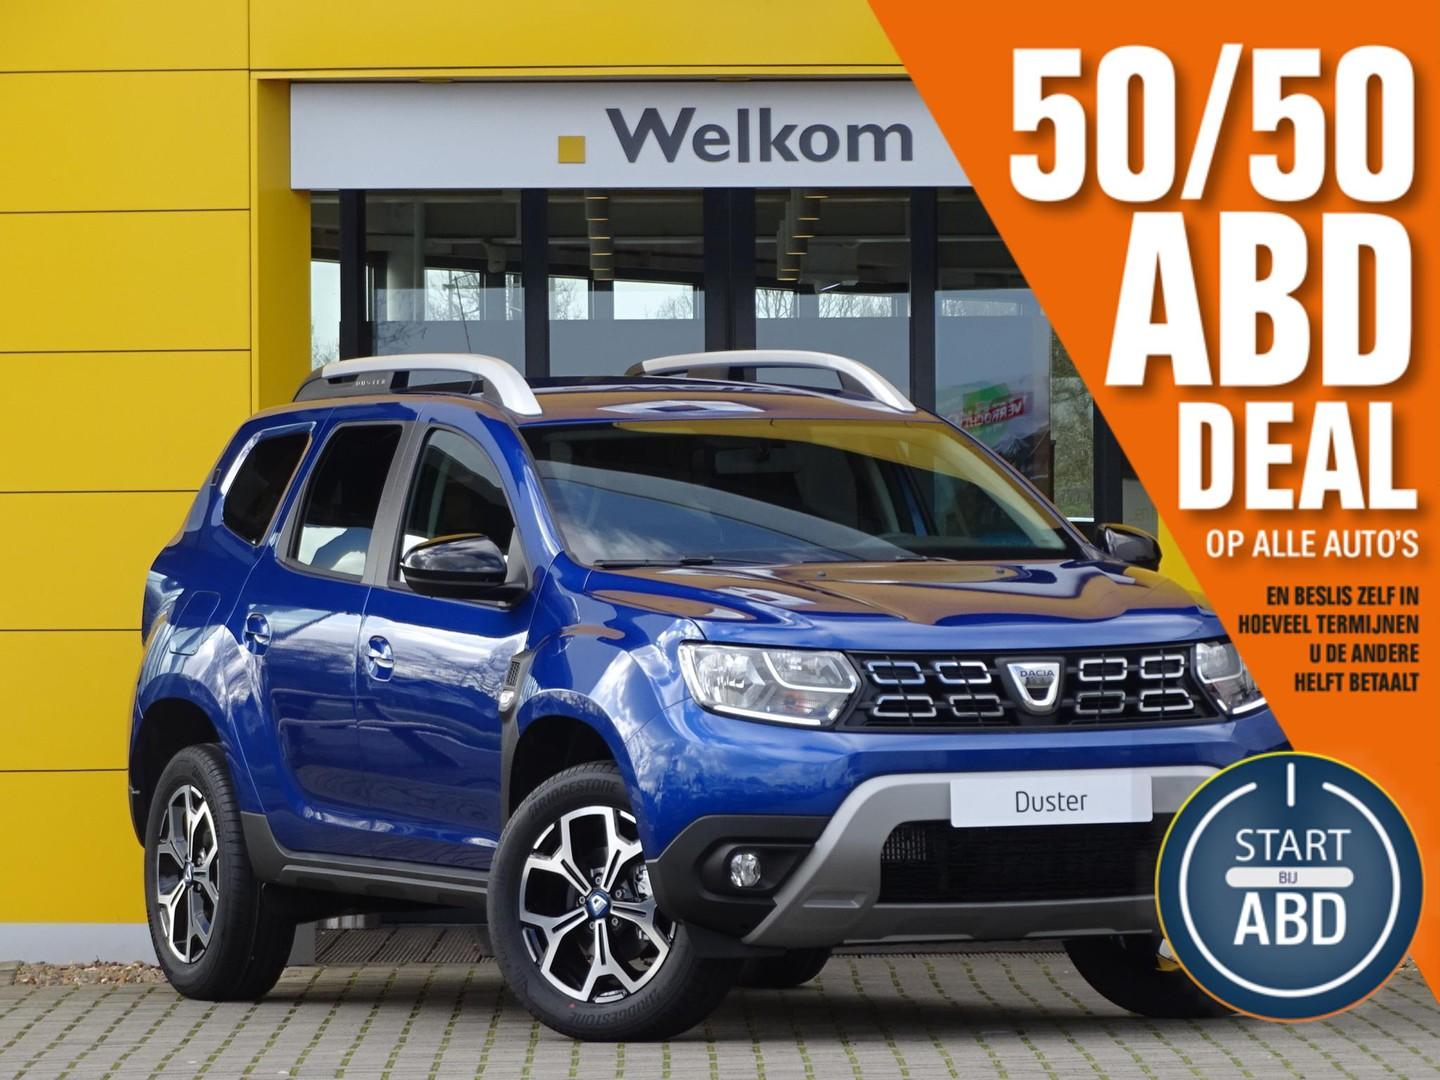 Dacia Duster 1.3 tce serie limitee 15th anniversary navigatiesysteem